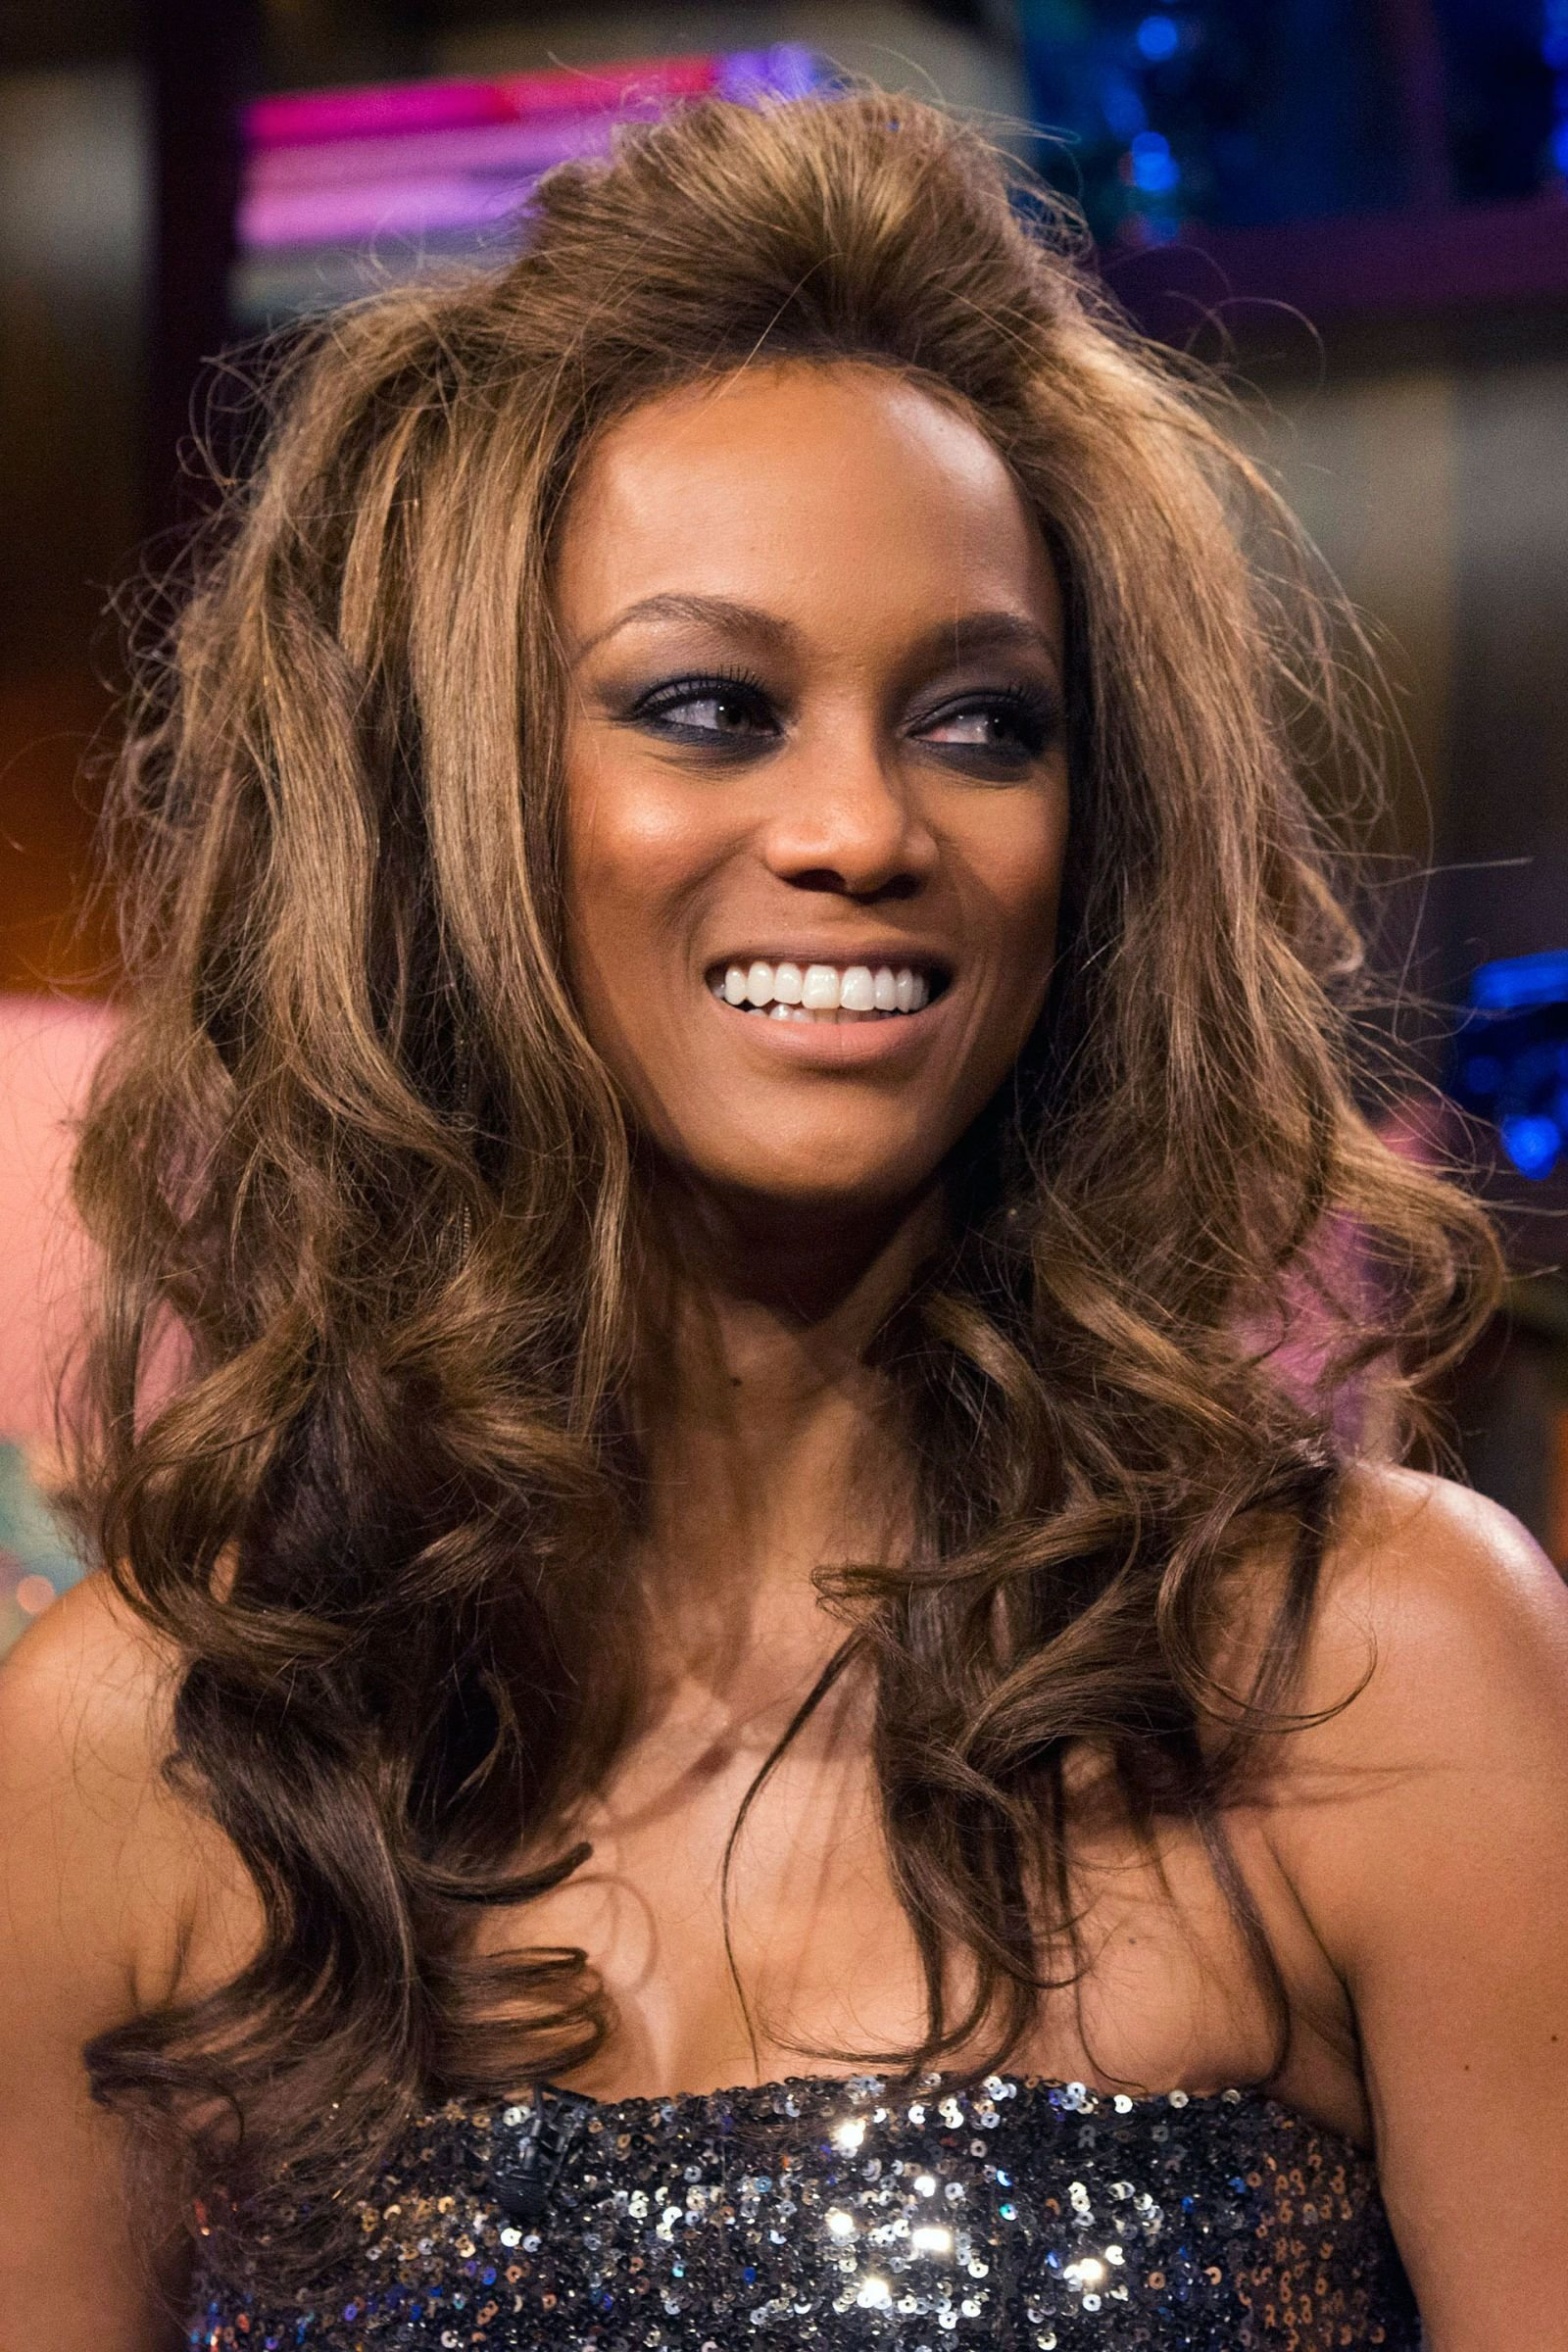 The Best Big Hair Styles S*Xy Hairstyles With Volume Pictures